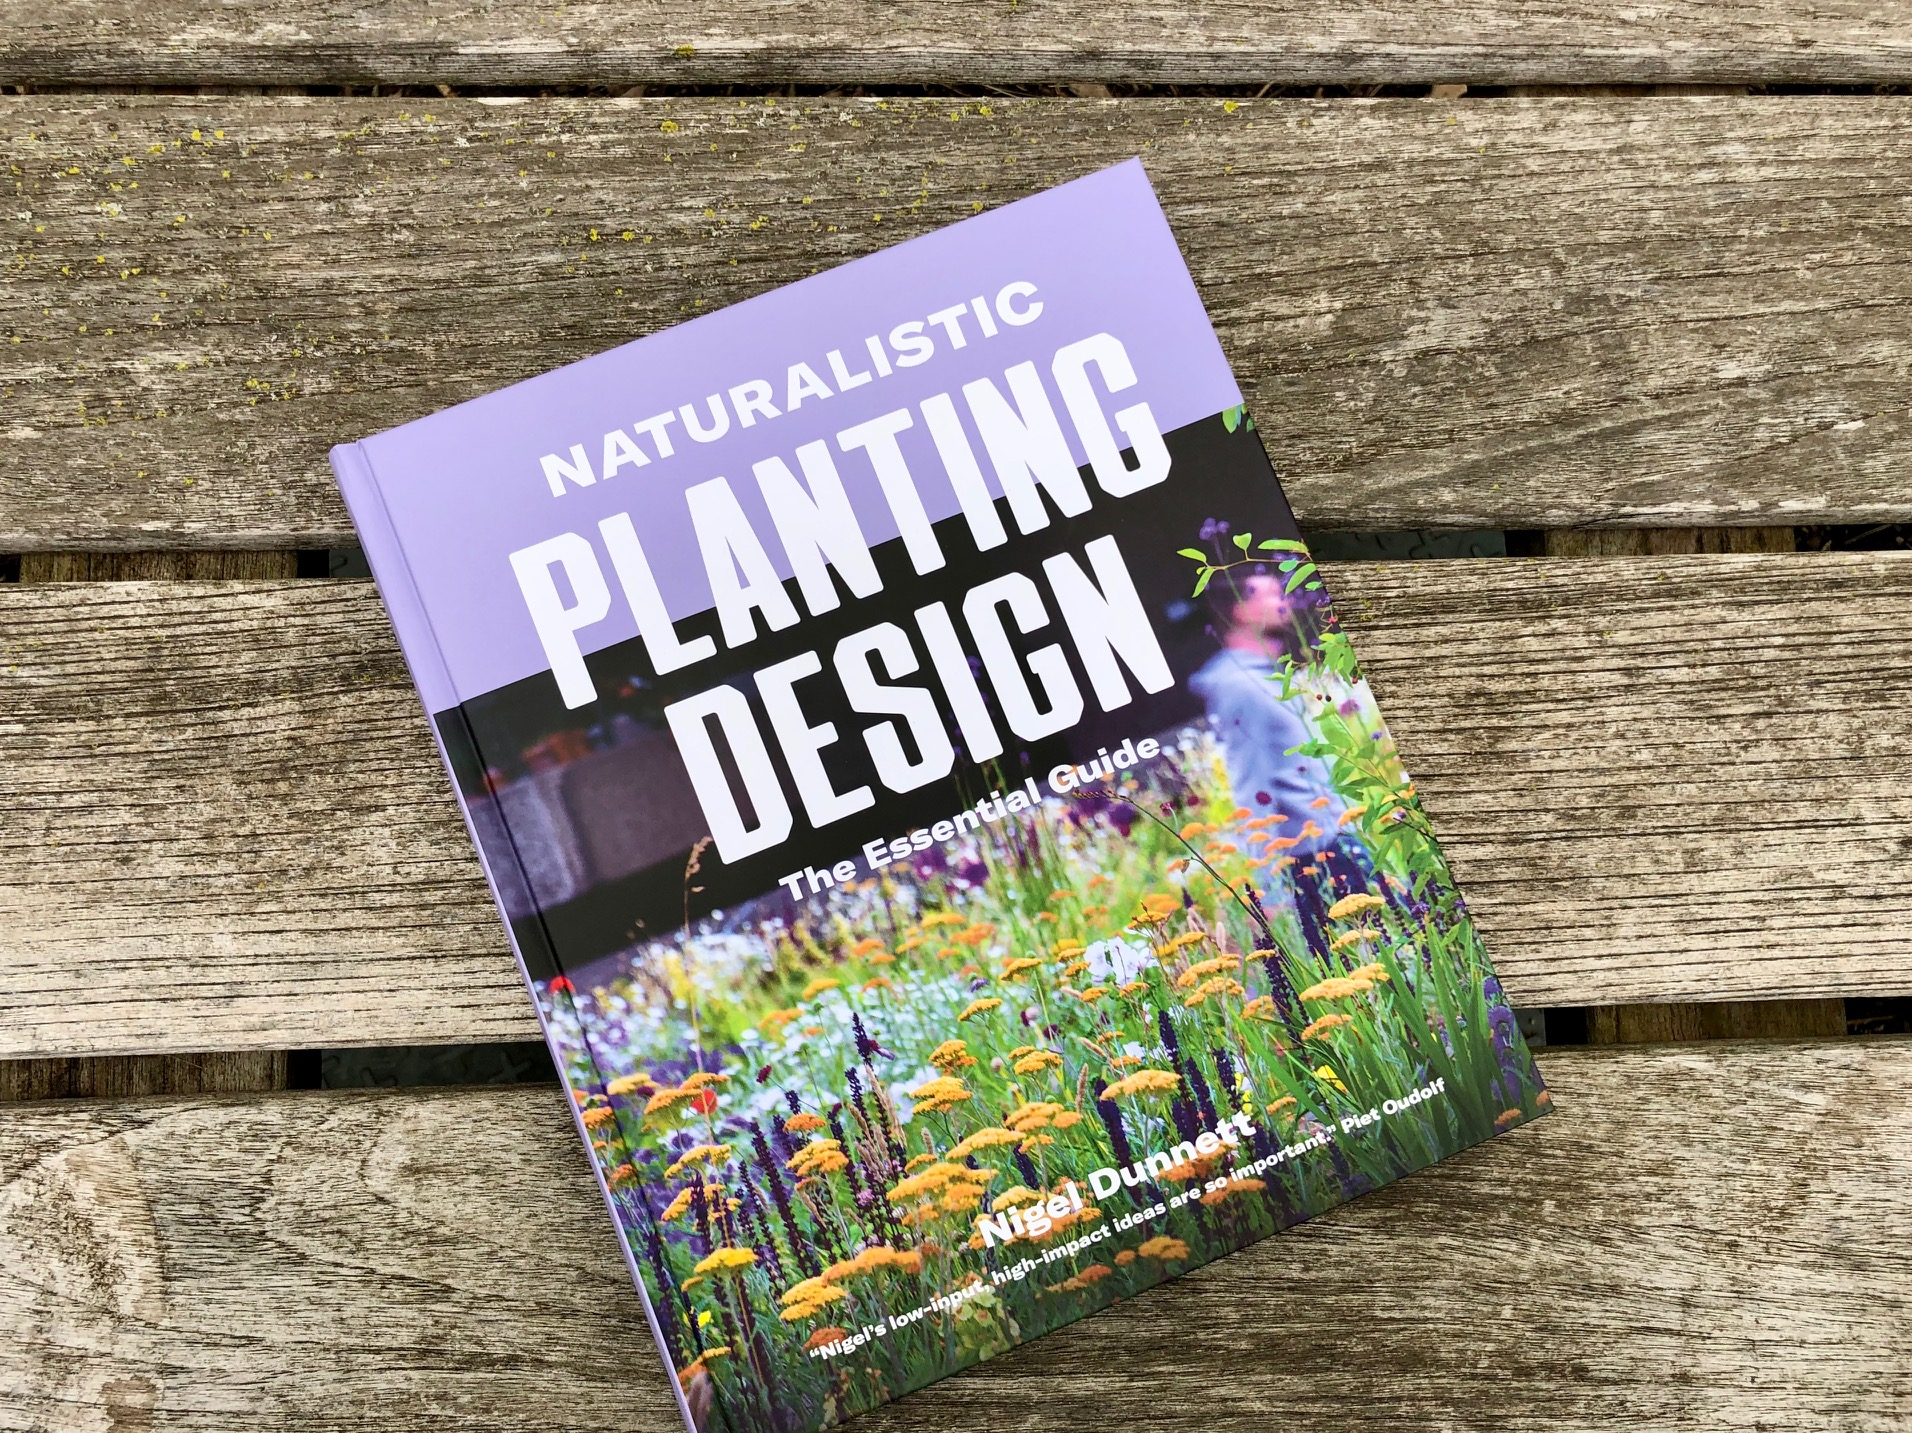 Naturalist Planting Design by Nigel Dunnett Spring Reading Book List - Thinking Outside the Boxwood by Nick McCullough